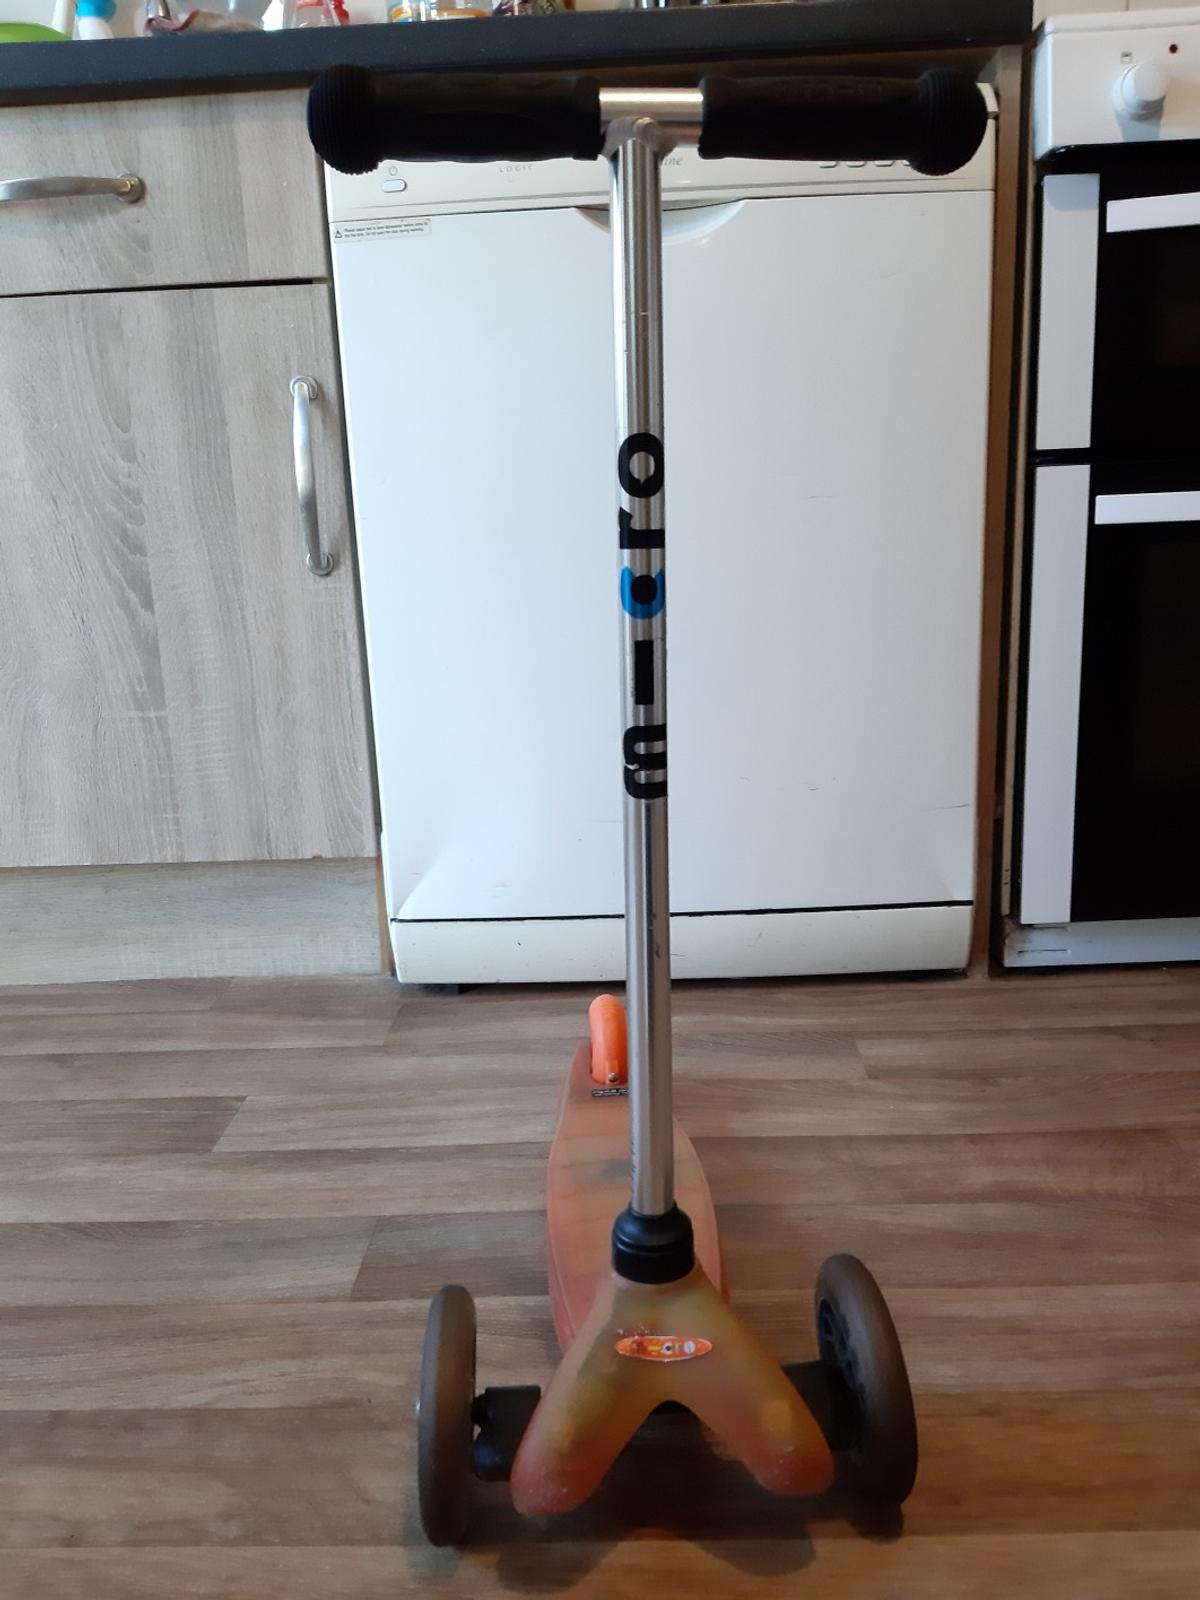 Clear Orange Micro scooter Break/Wheels Working Perfectly Fine In Really Good Condition